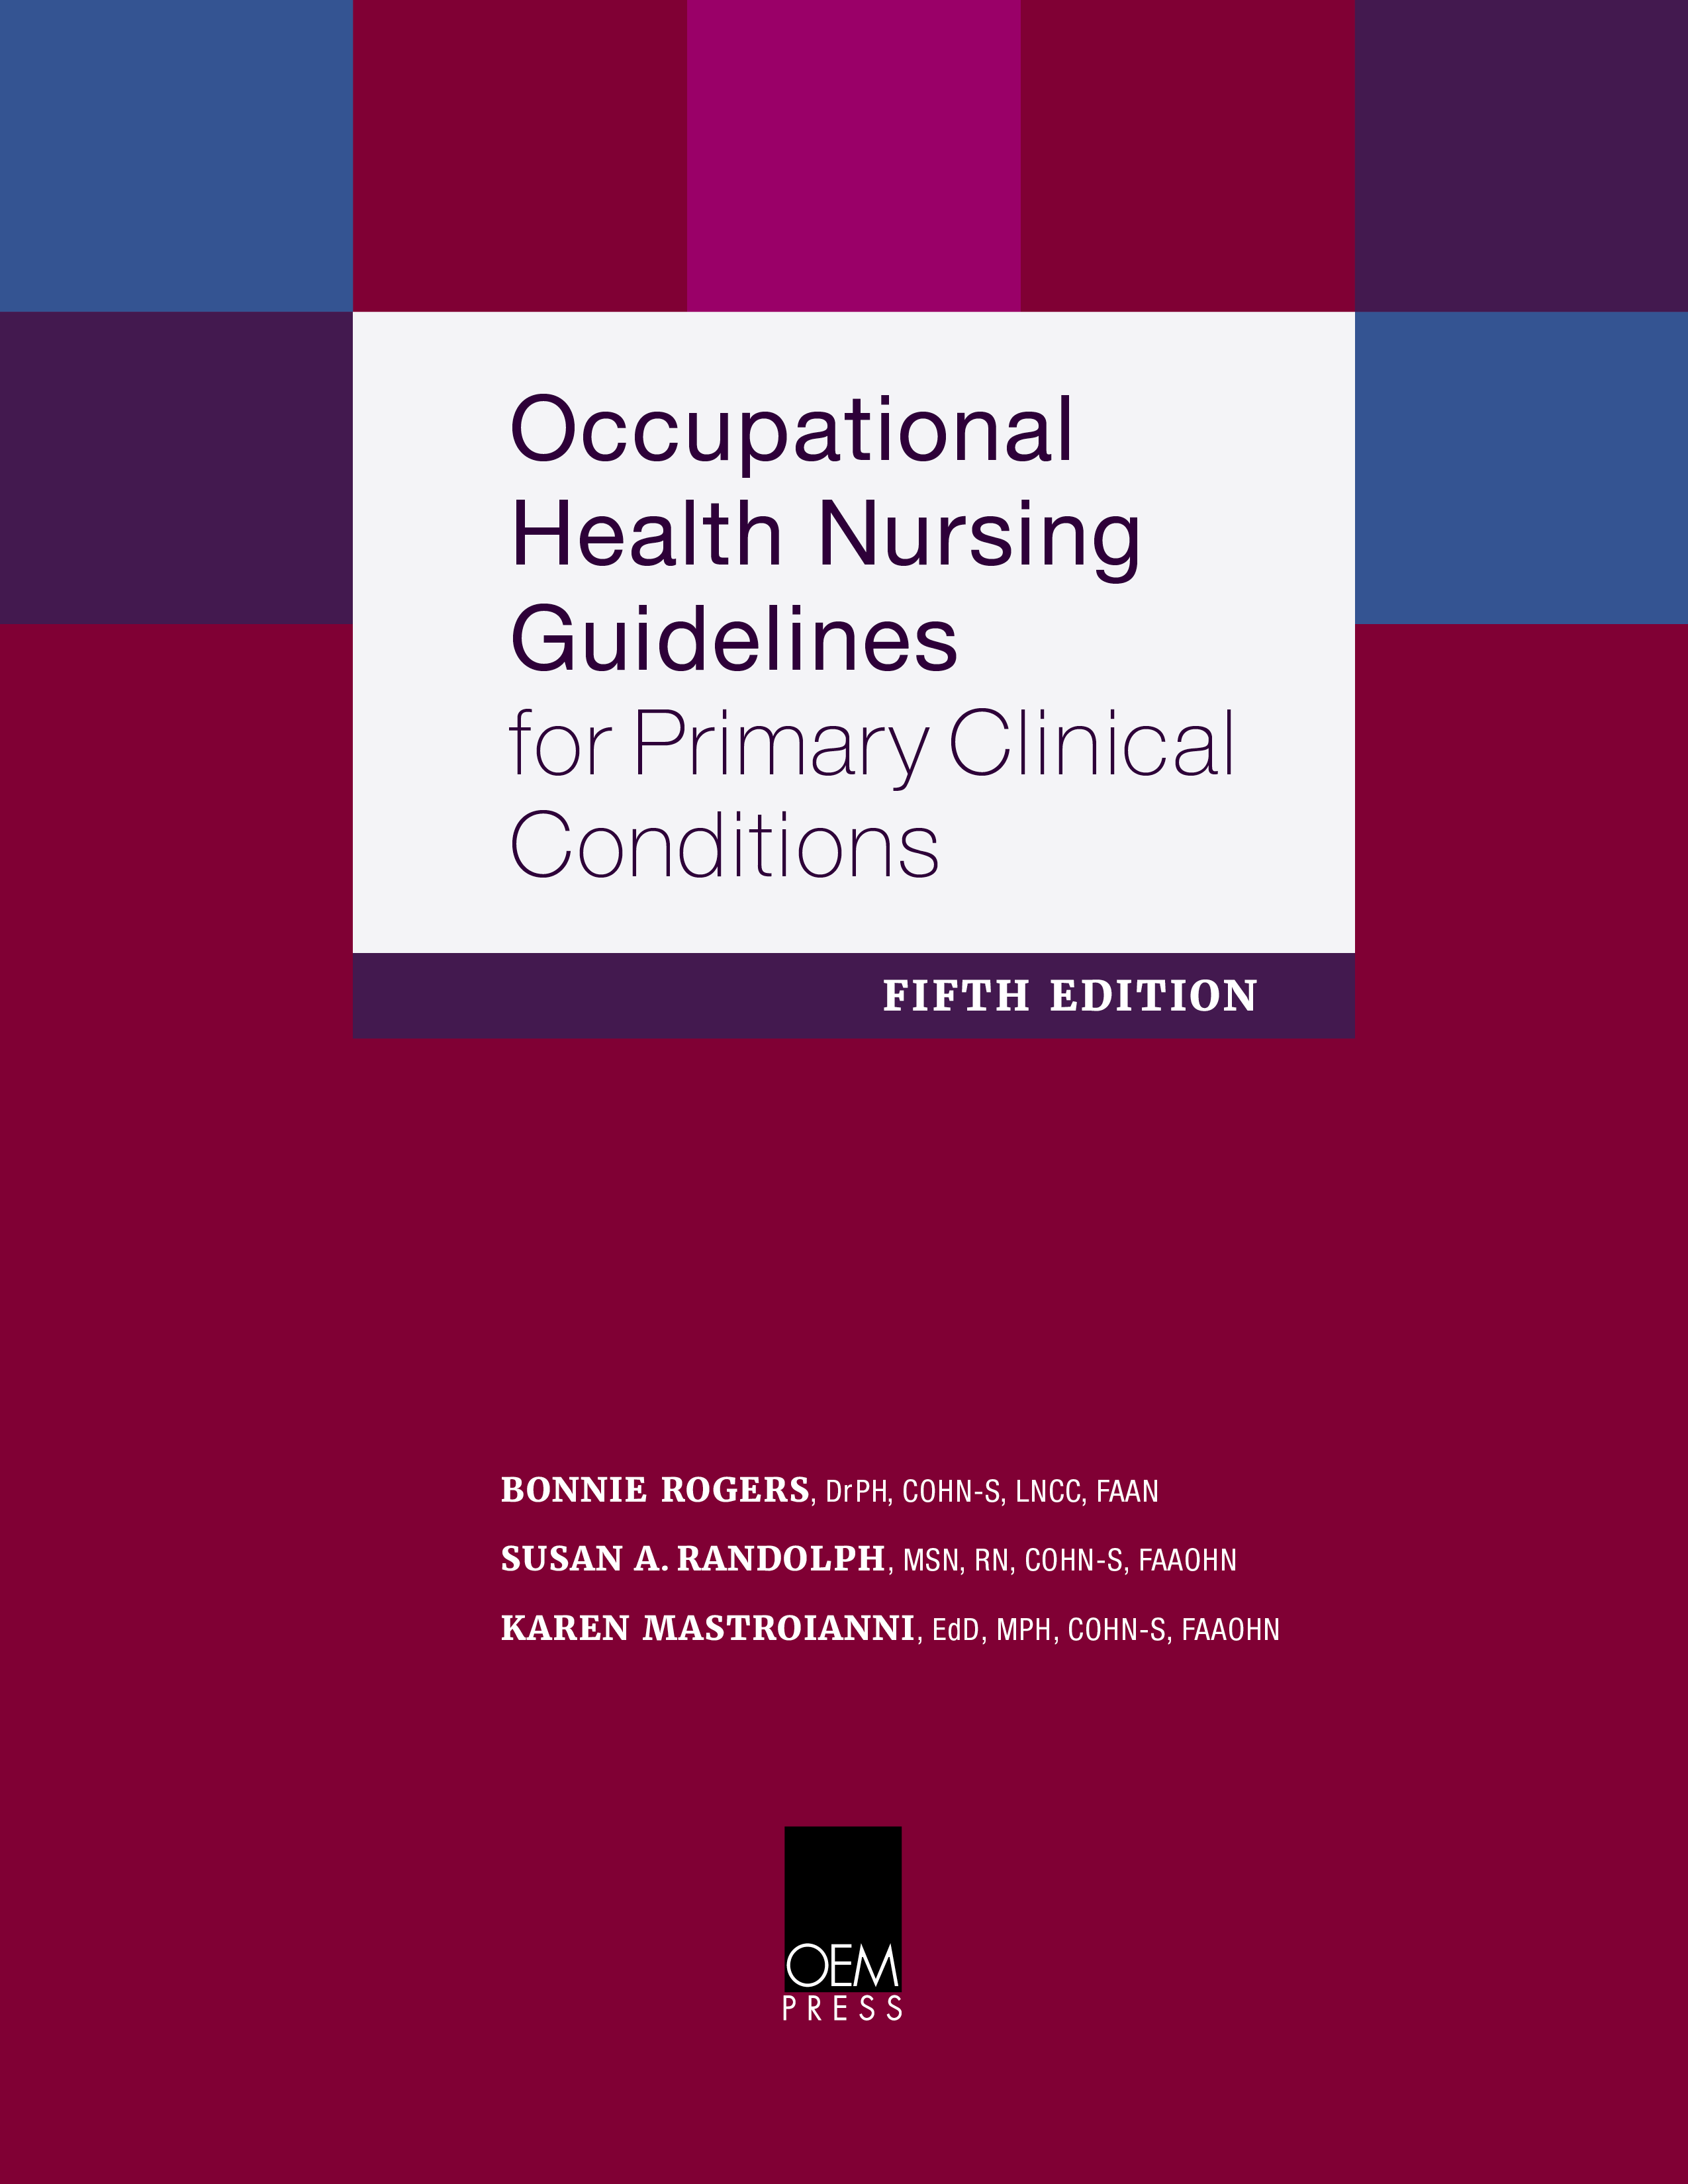 Occupational Health Nursing Guidelines for Primary Clinical Conditions, Fifth Edition